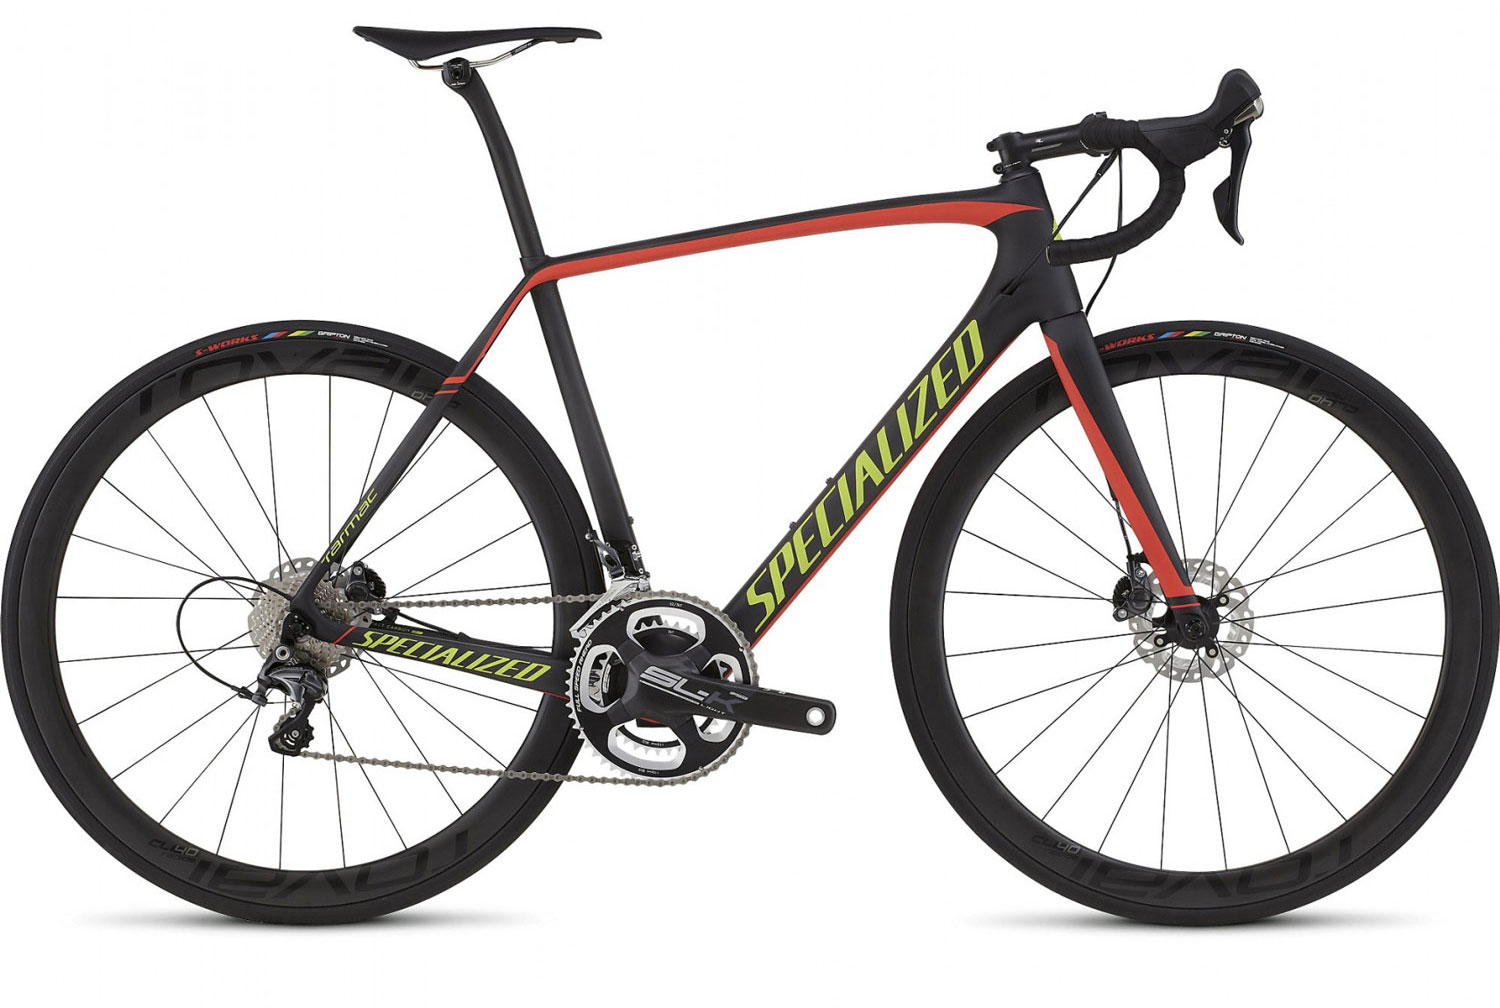 Велосипед Specialized Tarmac Expert Disc Race Carb / Red / Hyp | velo.ru - официальный дилер в России